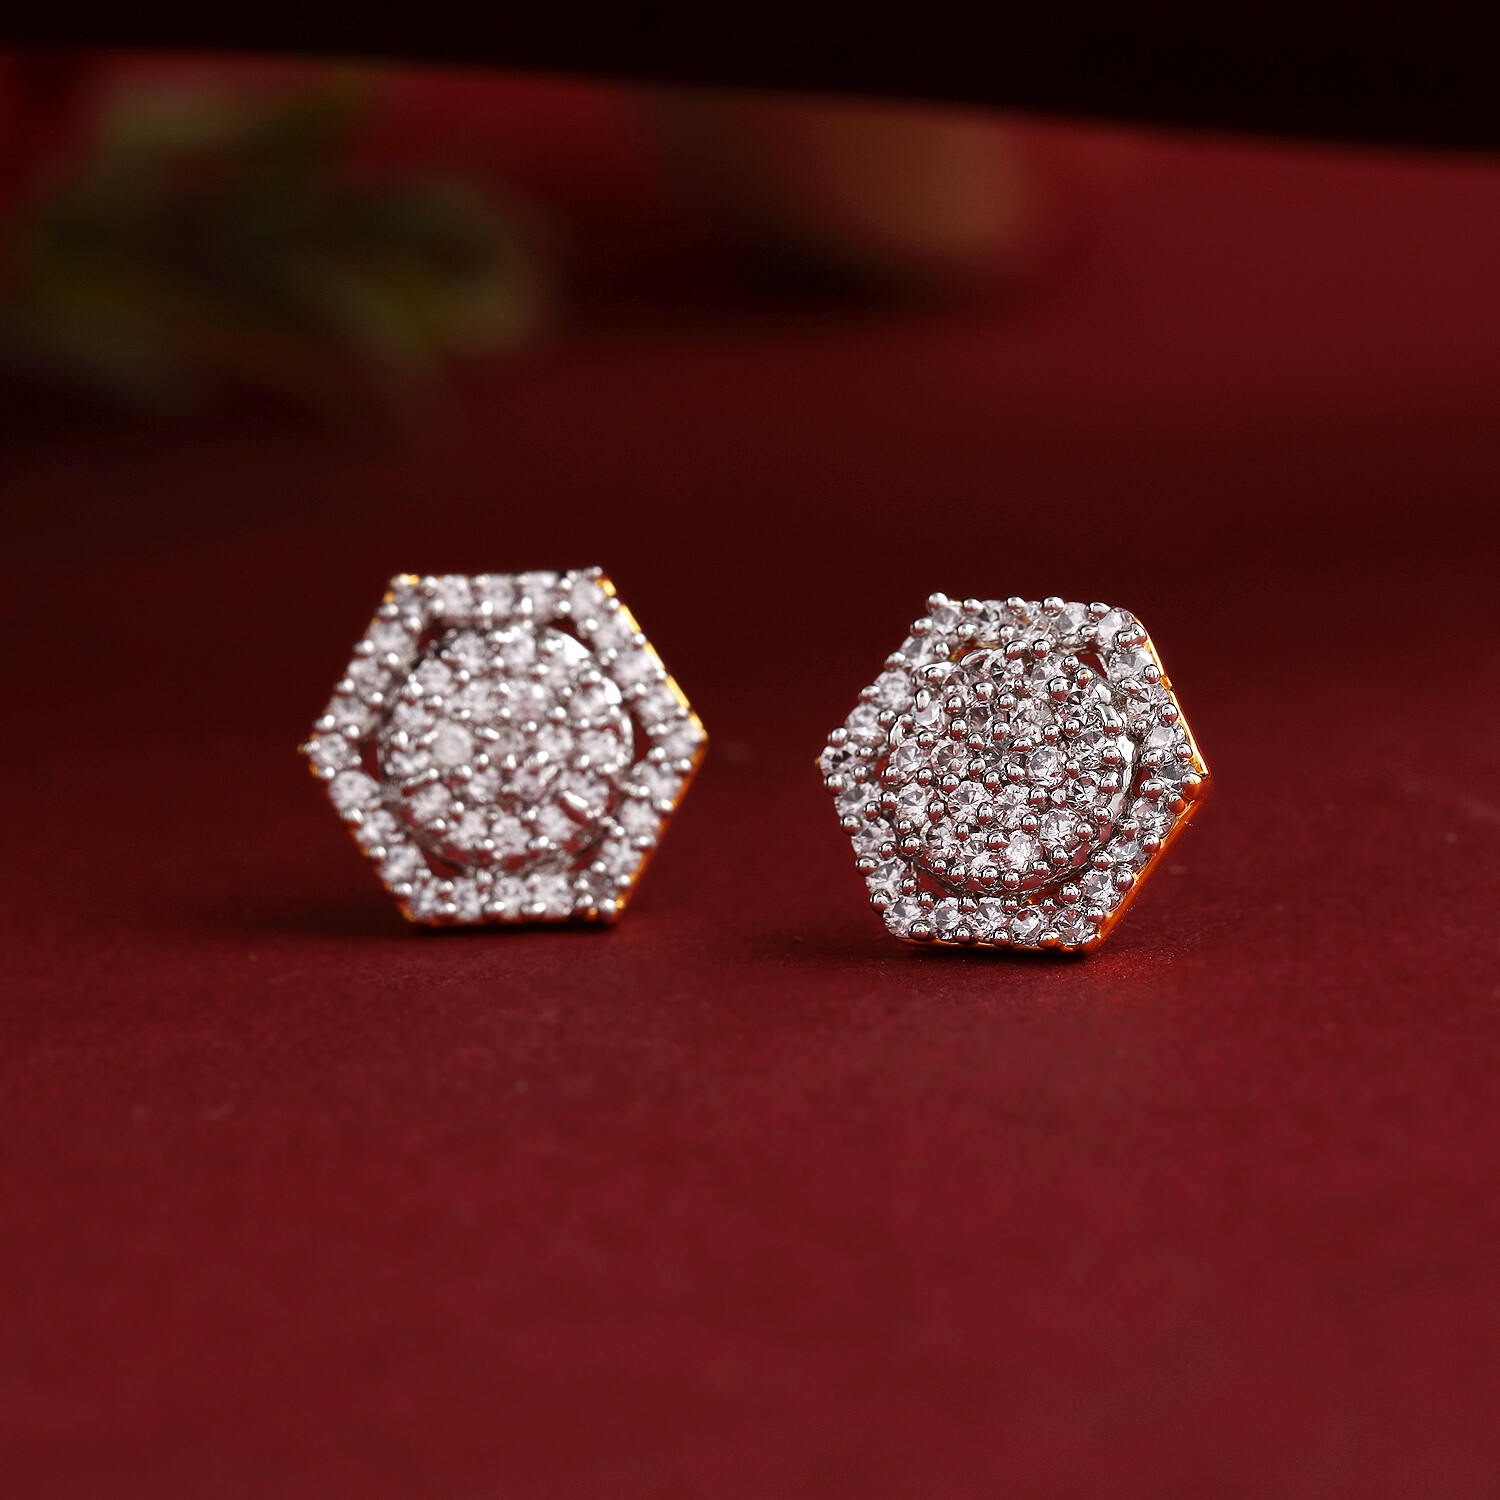 Estele Light Enriched AD Crystal Earrings